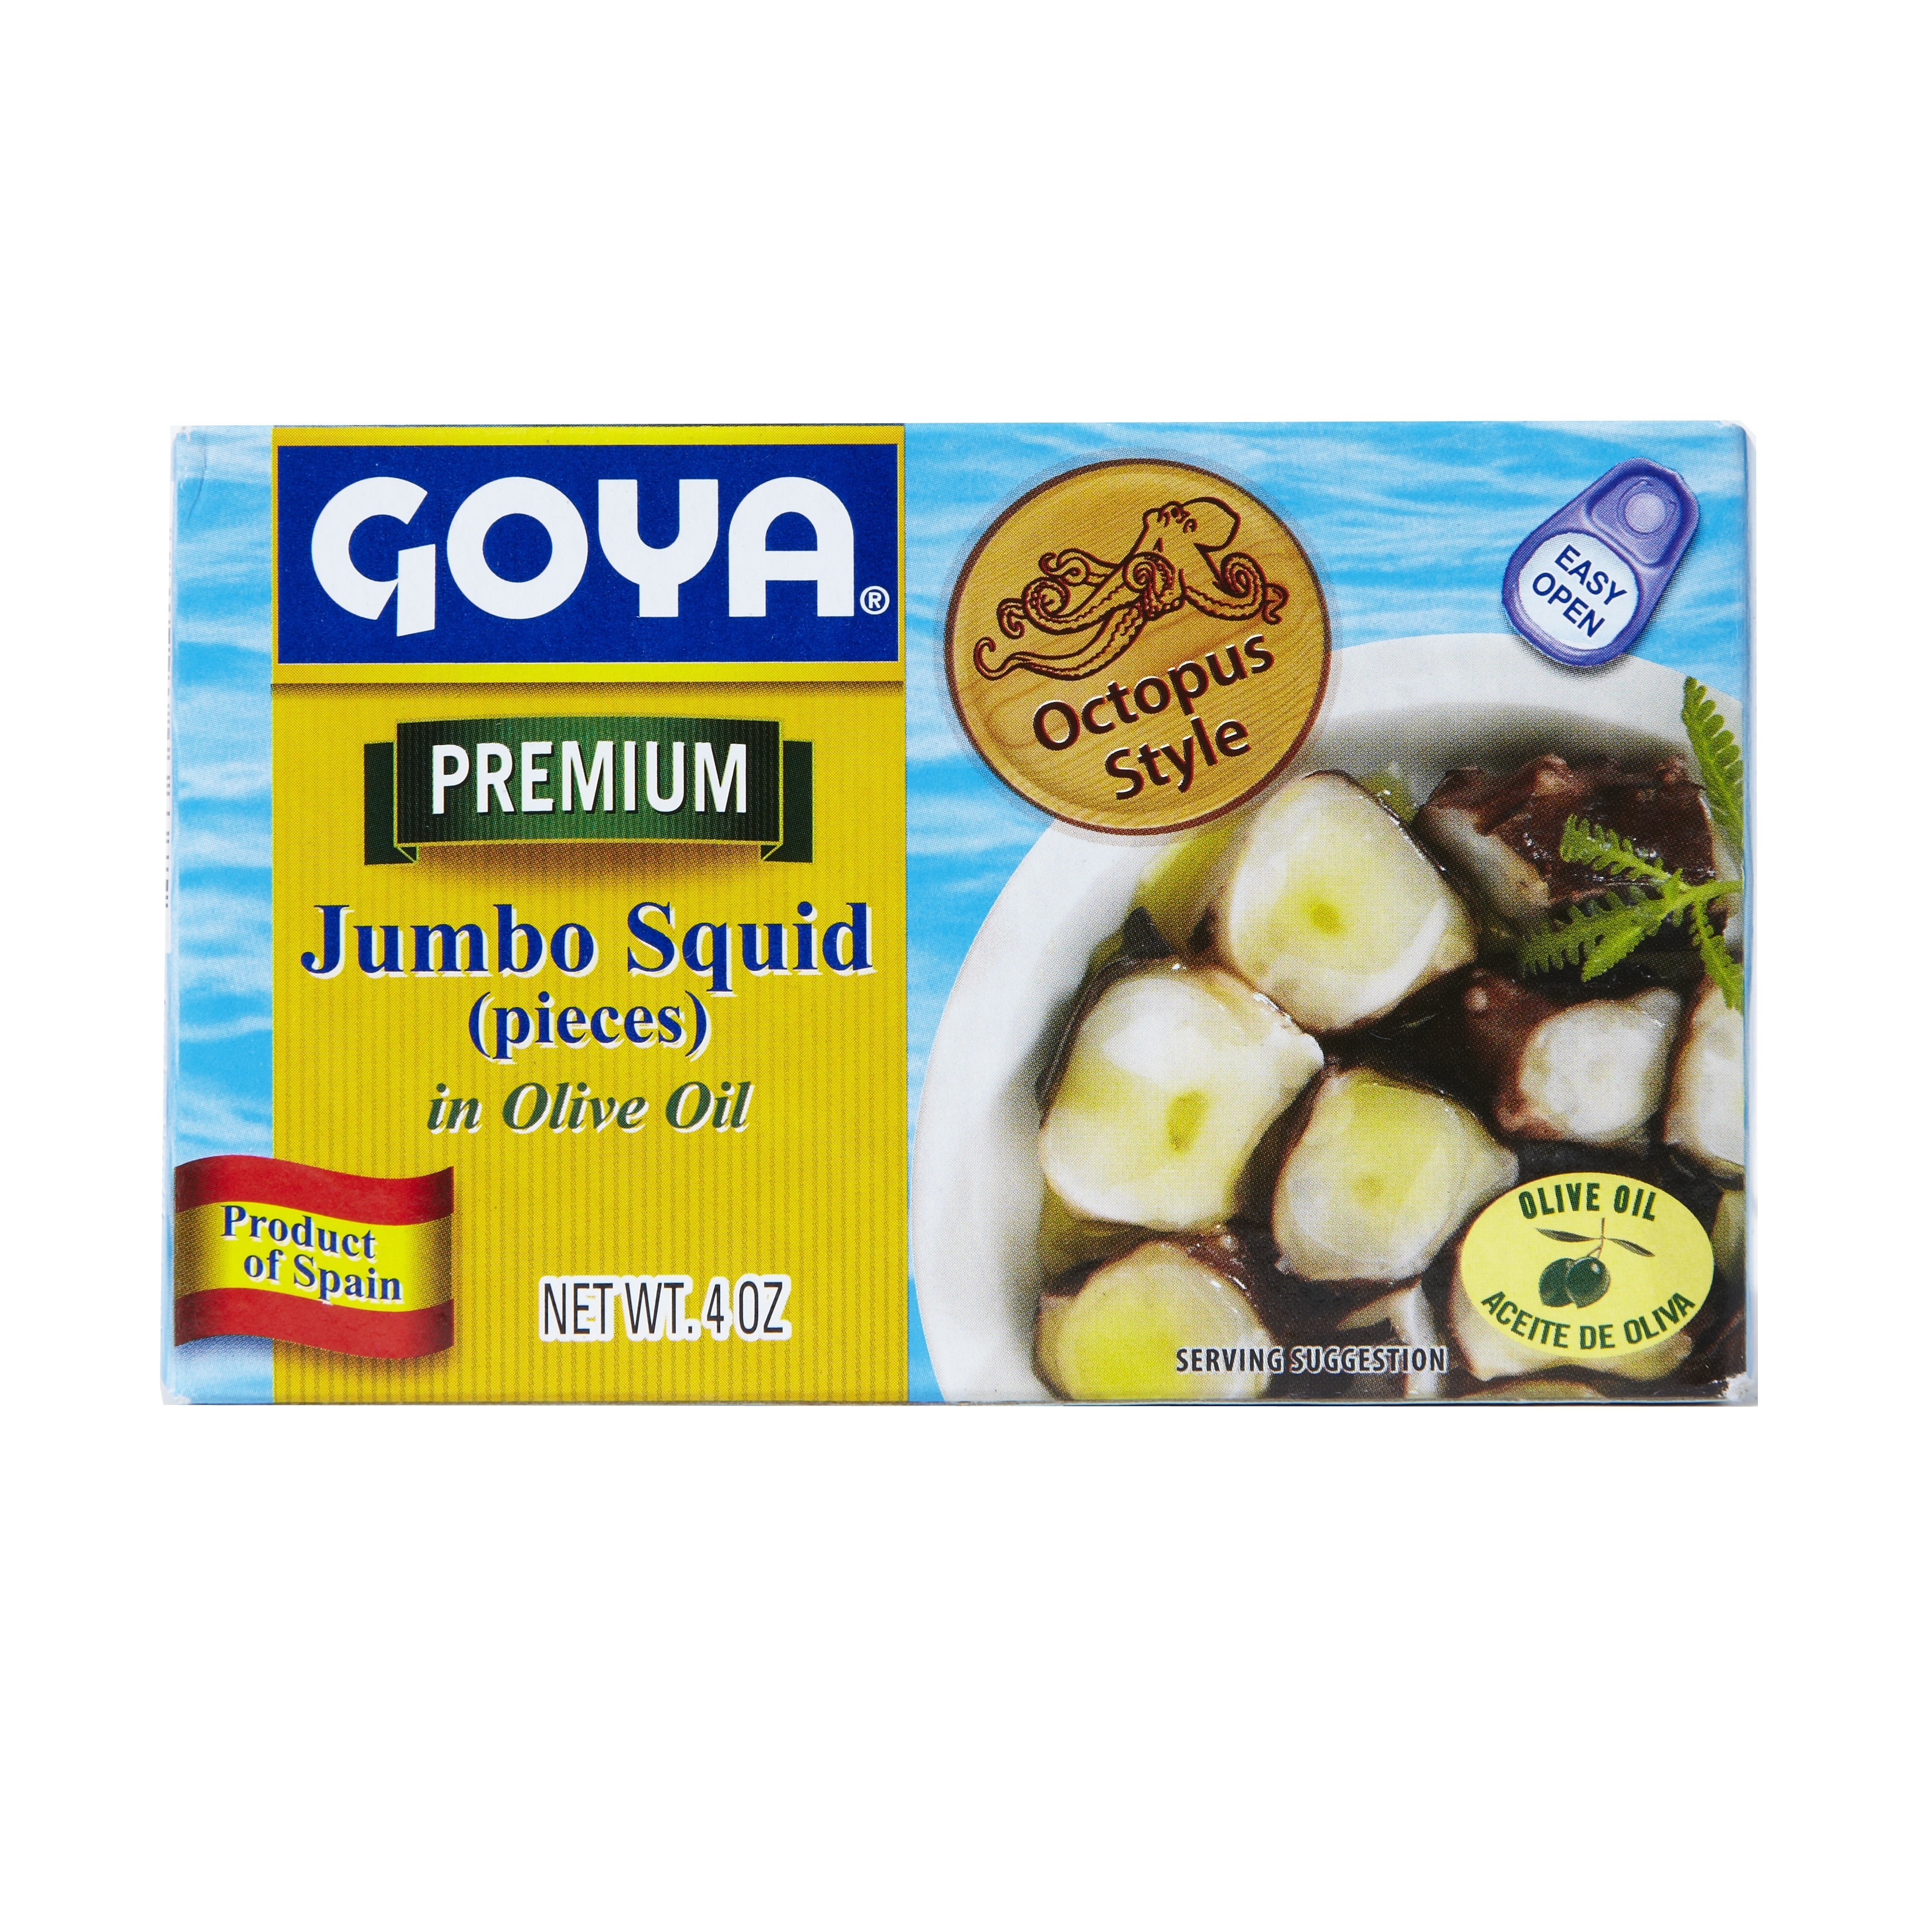 Goya Jumbo Squid Pieces in Olive Oil, 4 Oz Can, 25 Count